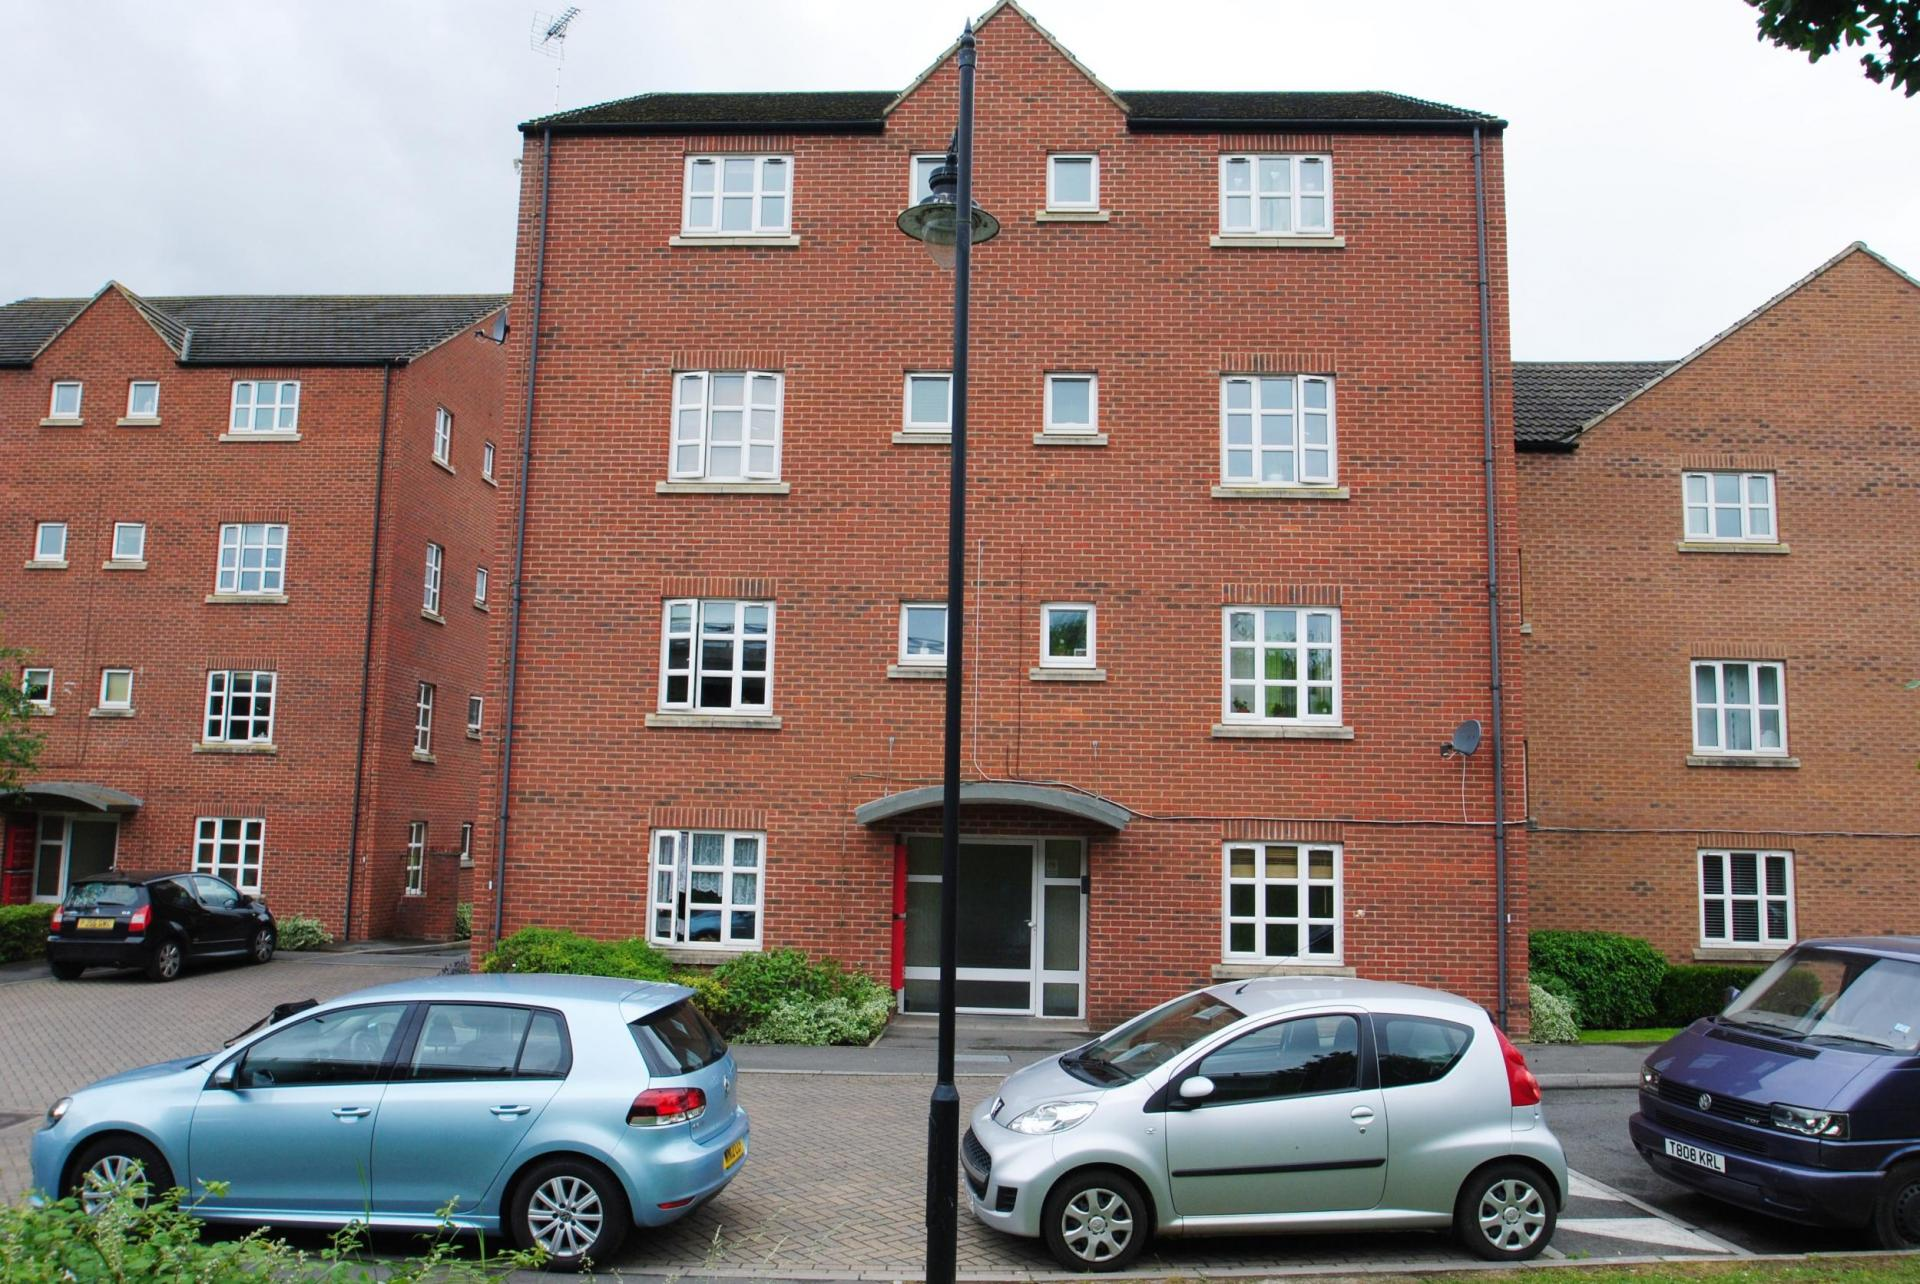 2 Bedroom Apartment For Sale In Somerset